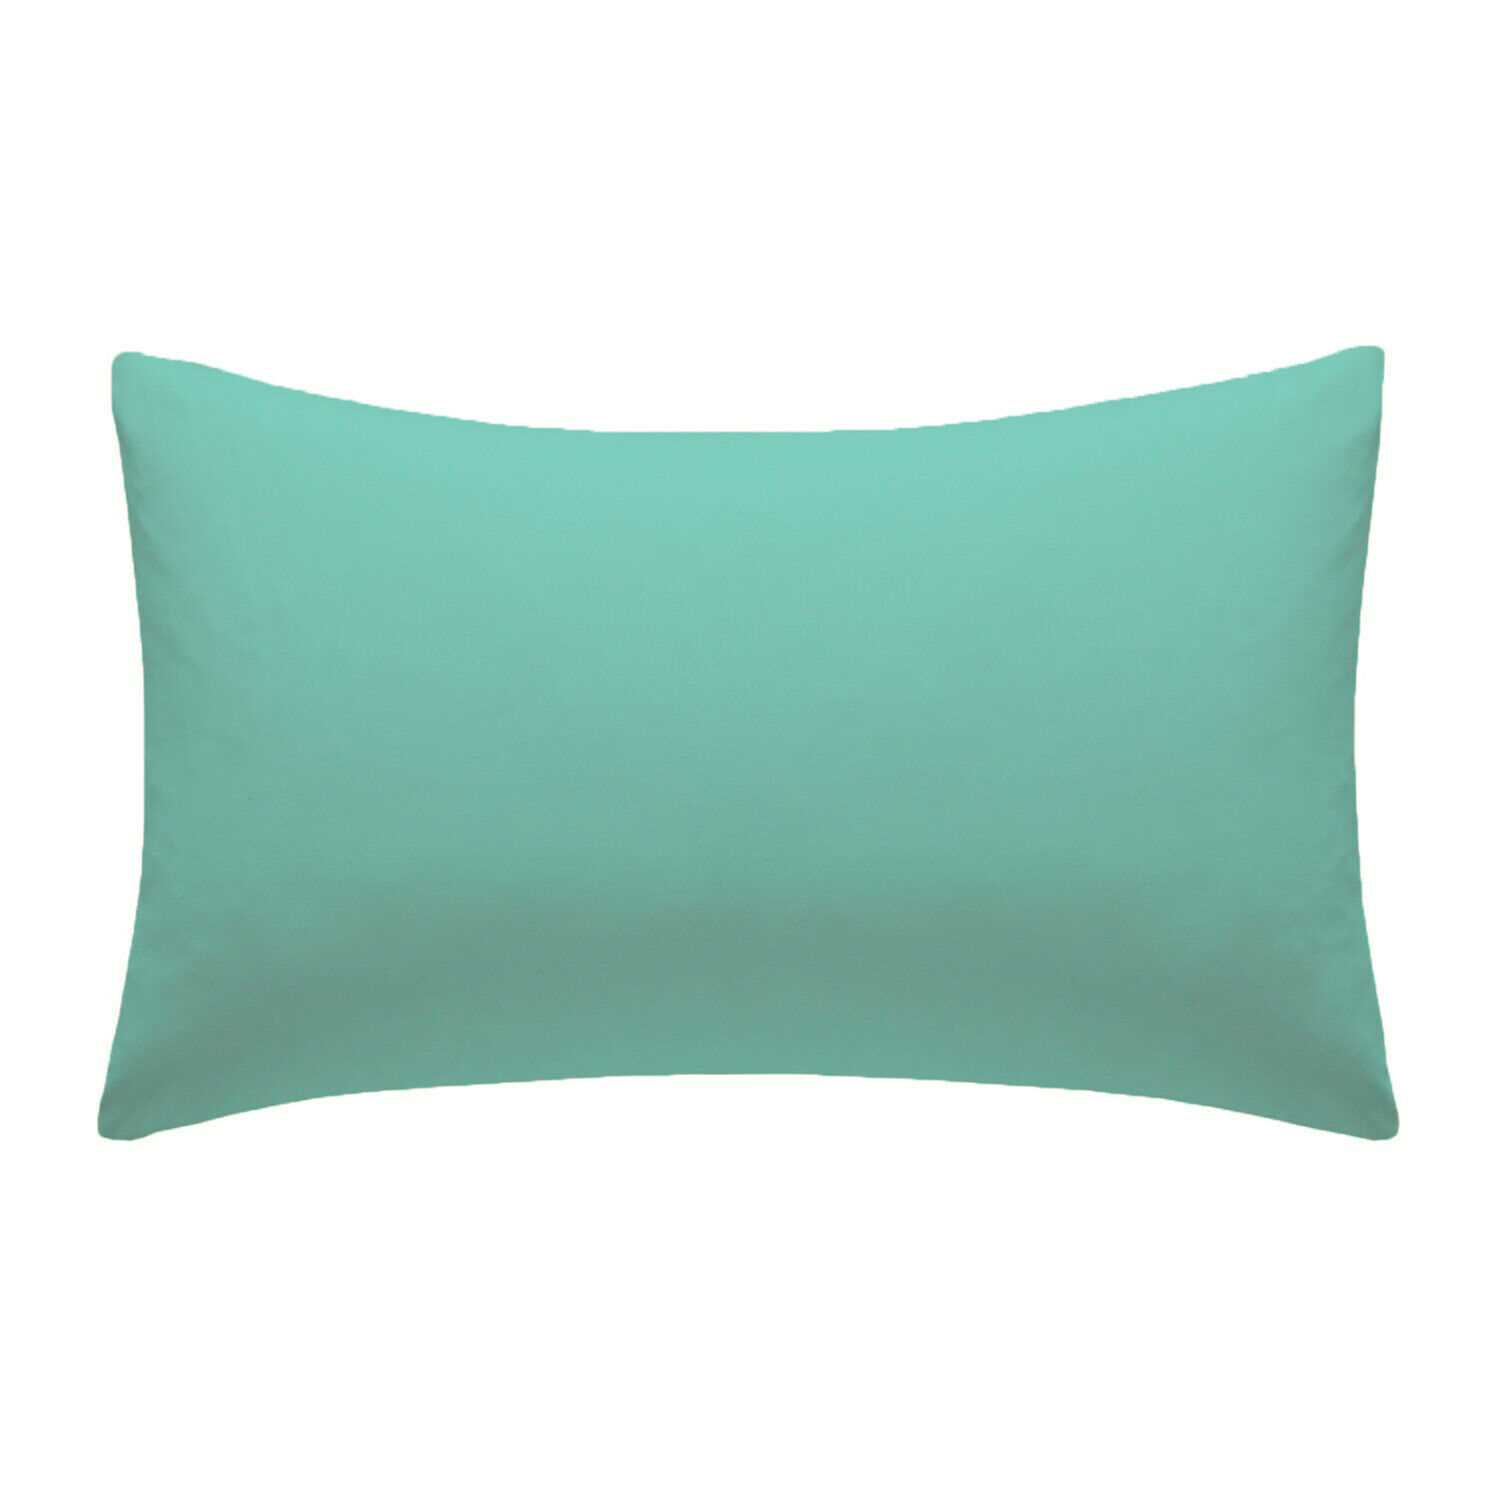 Mint Plain Pillow Cases Cotton Pair Housewife Case Cover 100% Luxury Pack Covers